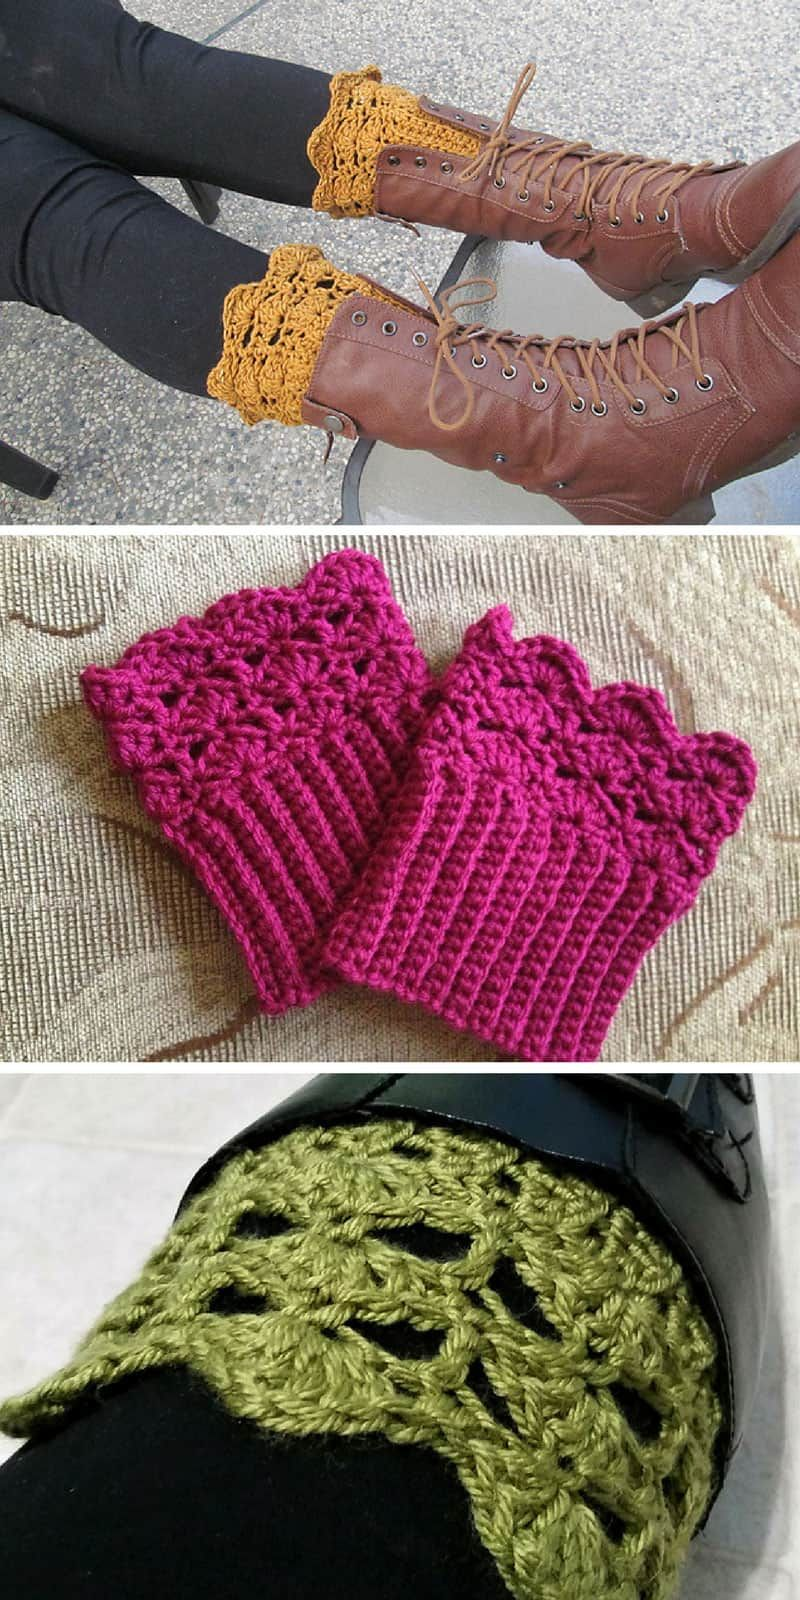 11 Stylish Boot Cuff Crochet Patterns to Add Some Feminine Flair to Your Winter Wardrobe! #bootcuffs